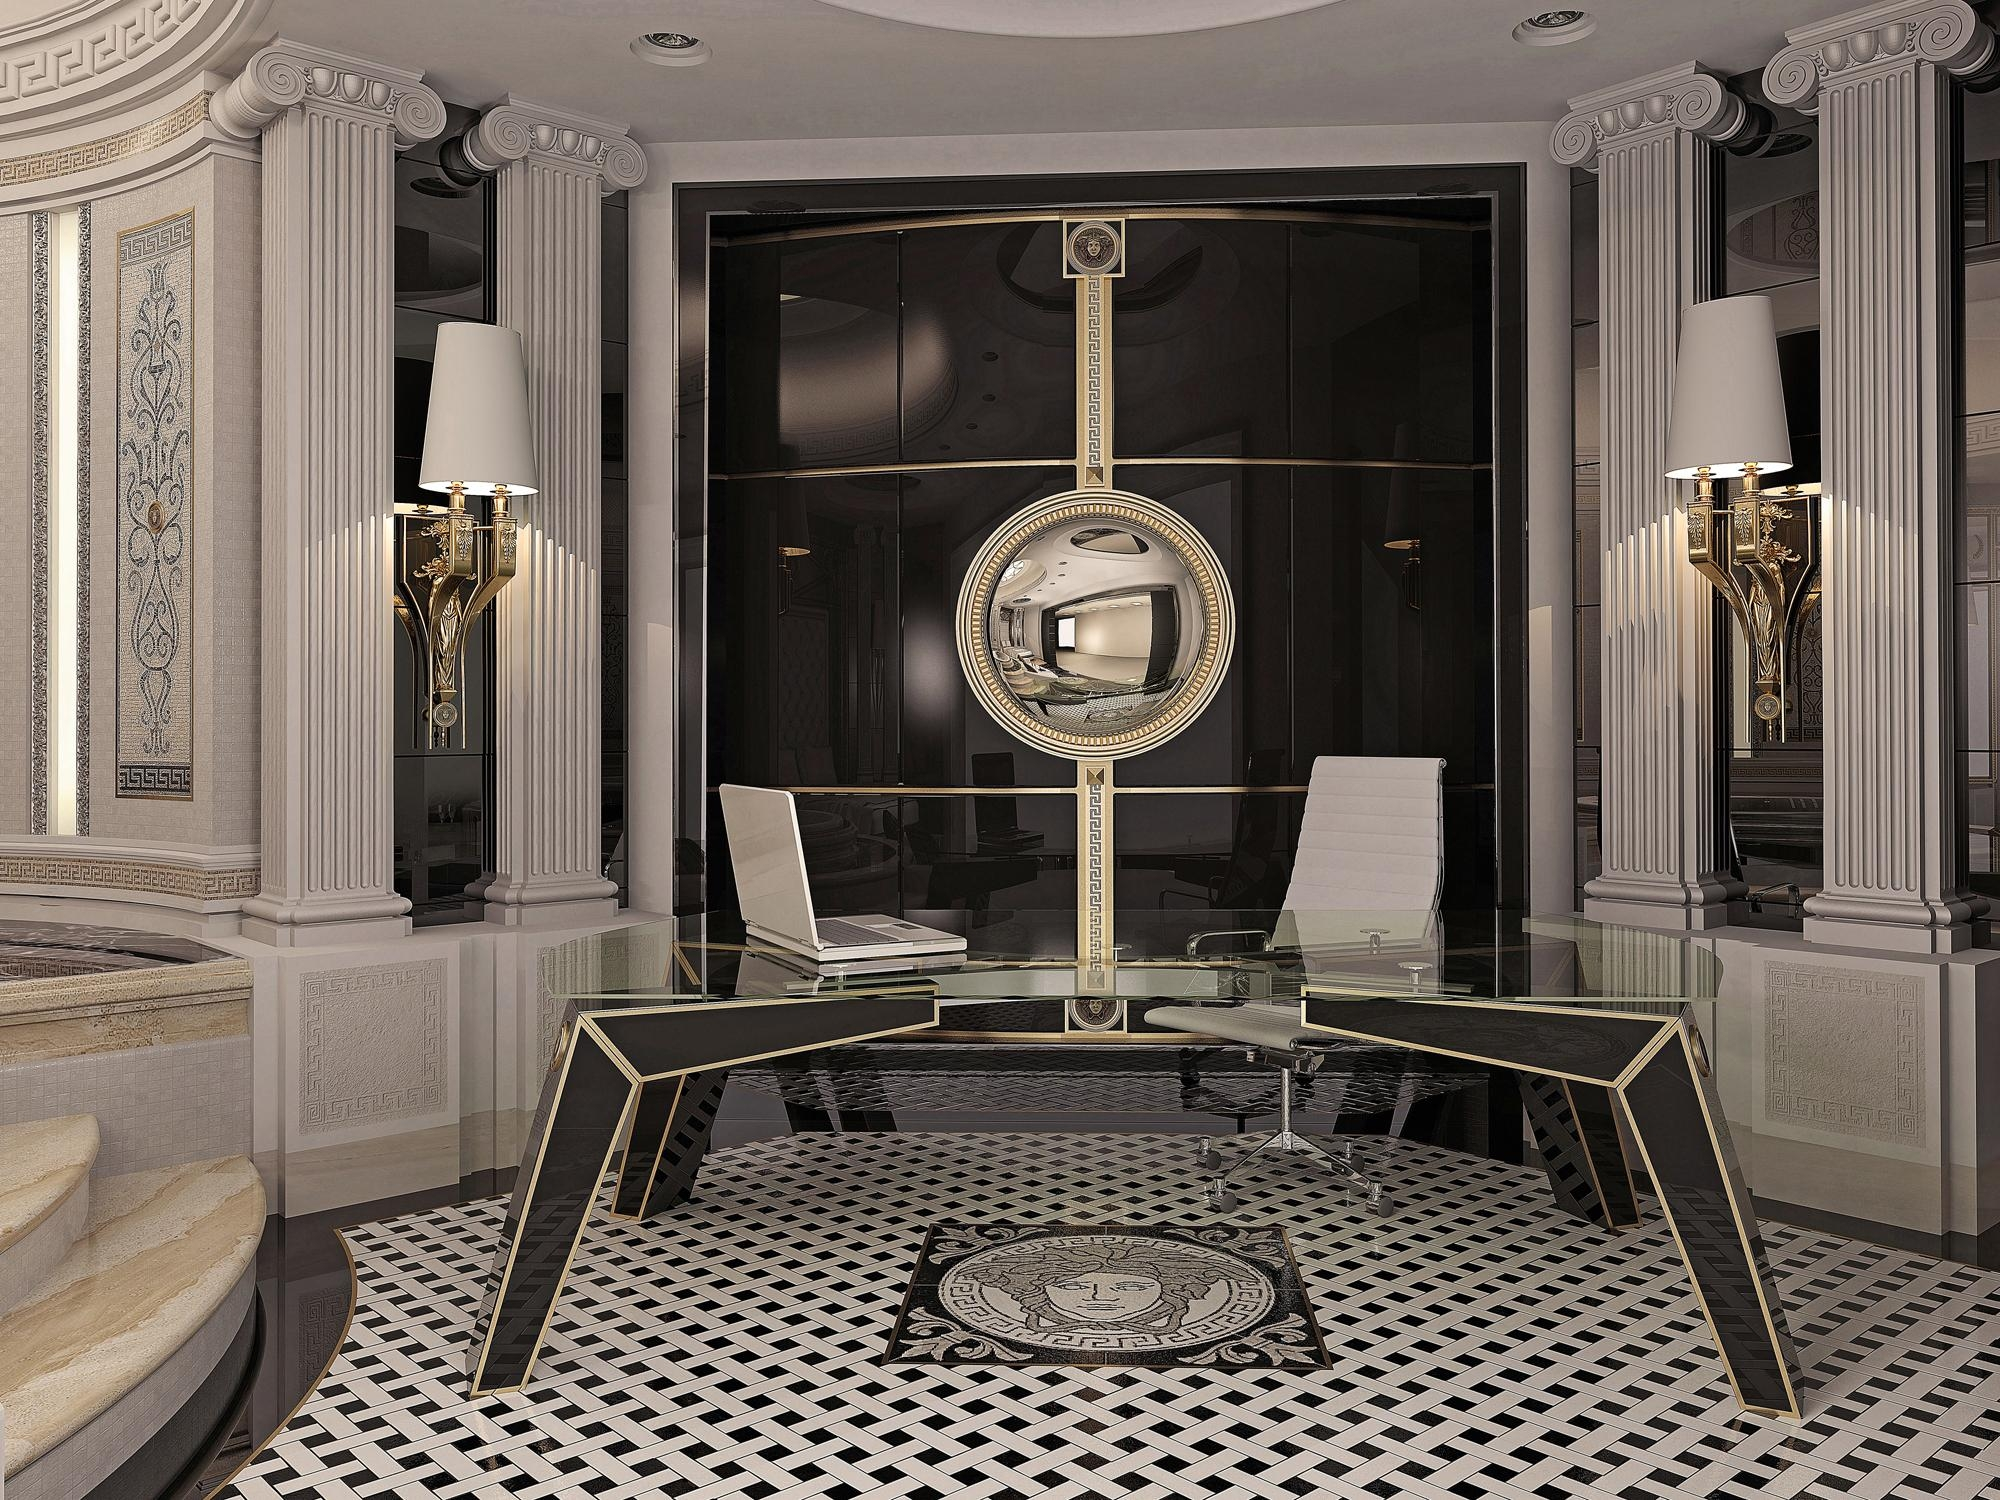 Interior And Art Files: Versace Home Within Versace Wall Art (Image 9 of 20)